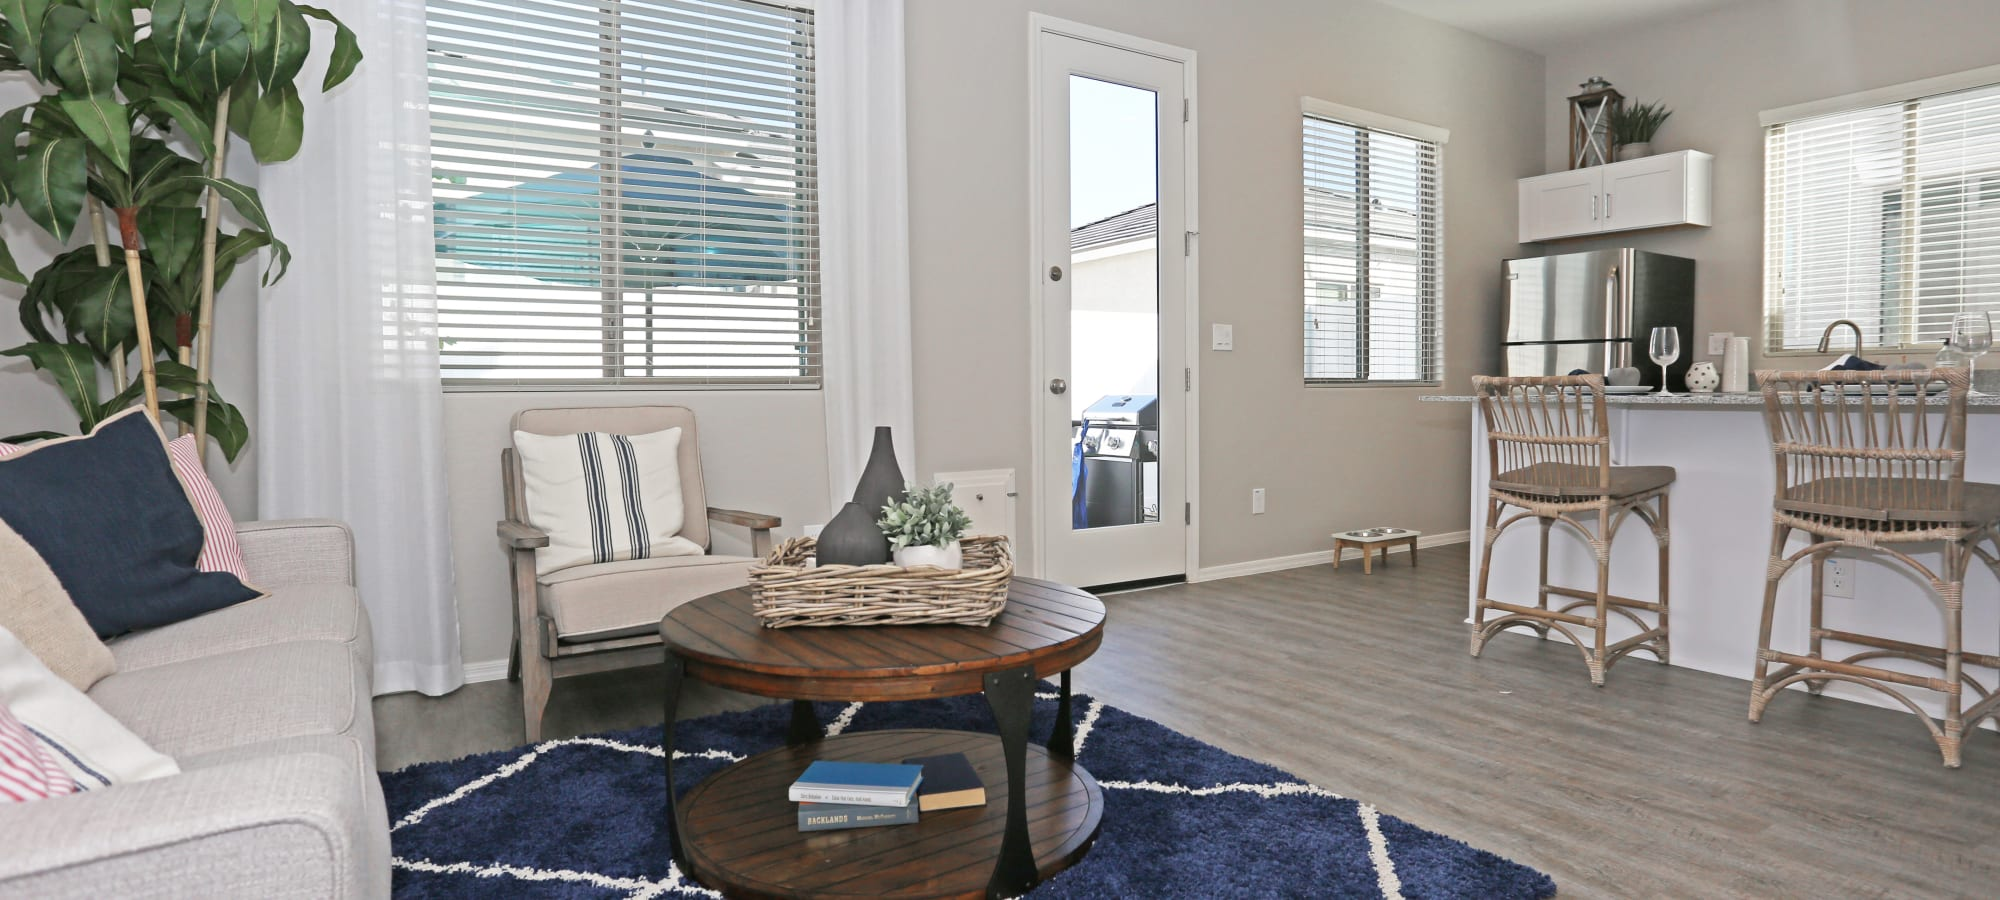 Comfortable living room in model home at Christopher Todd Communities On Mountain View in Surprise, Arizona